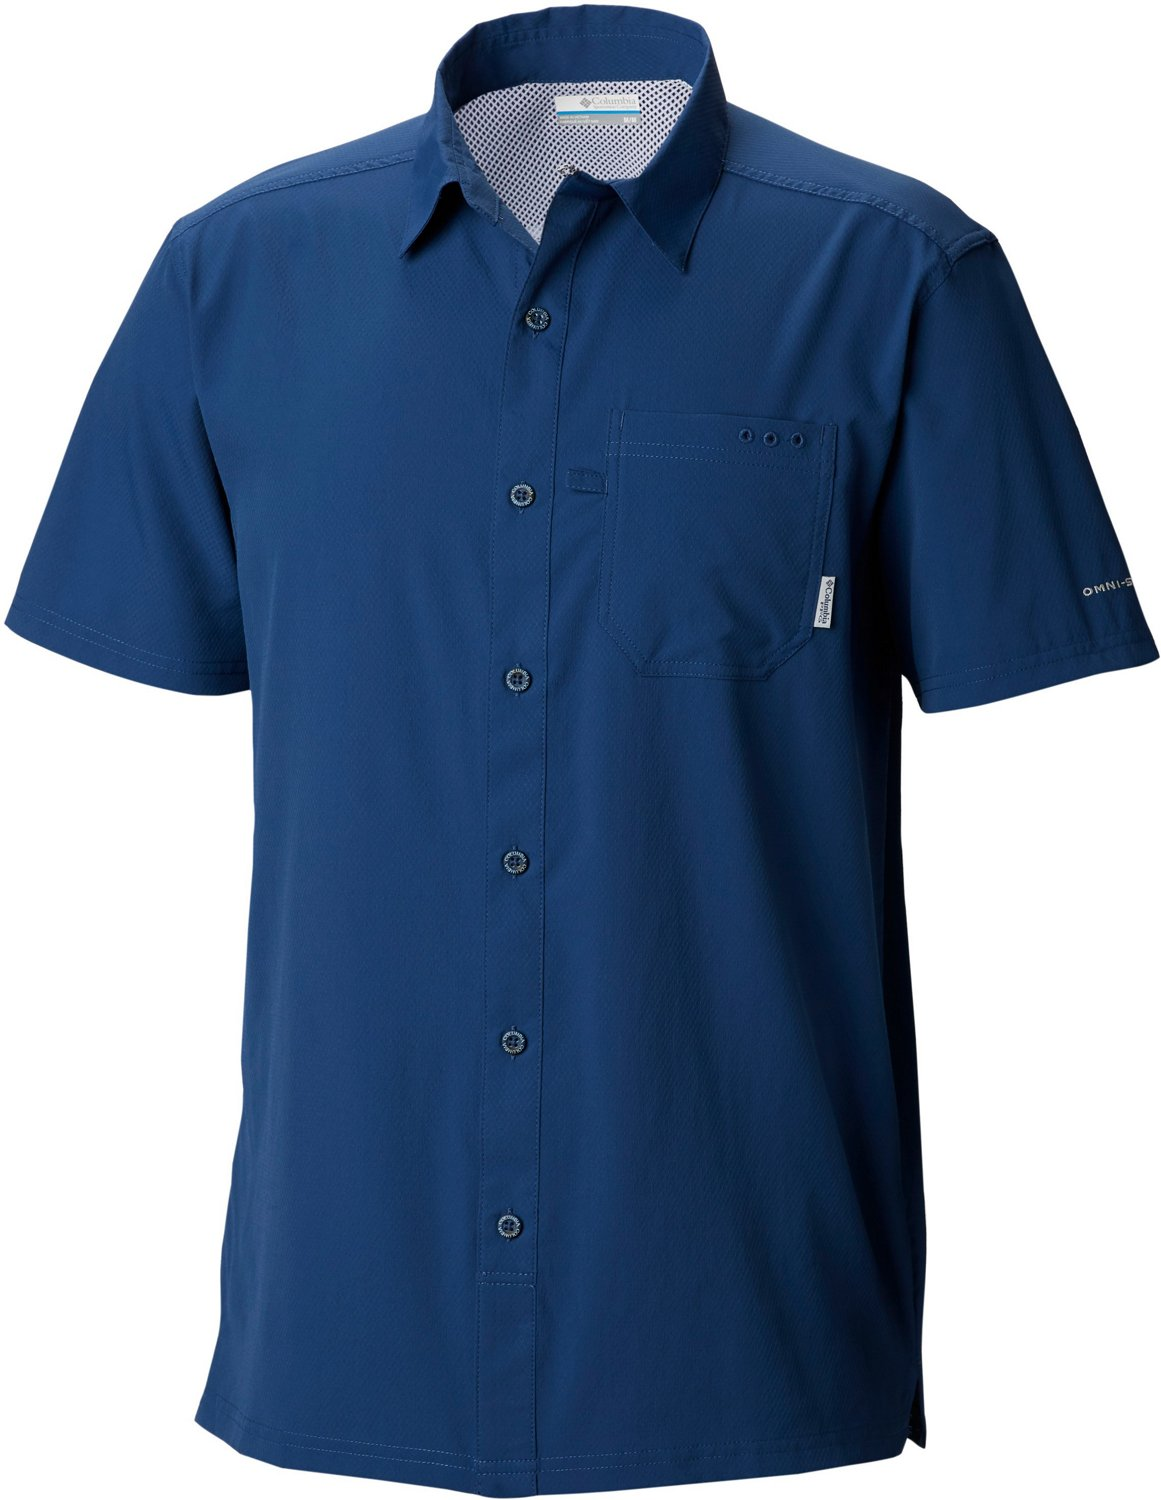 a5ec290a804 Display product reviews for Columbia Sportswear Men s Slack Tide Camp  Button Down Shirt